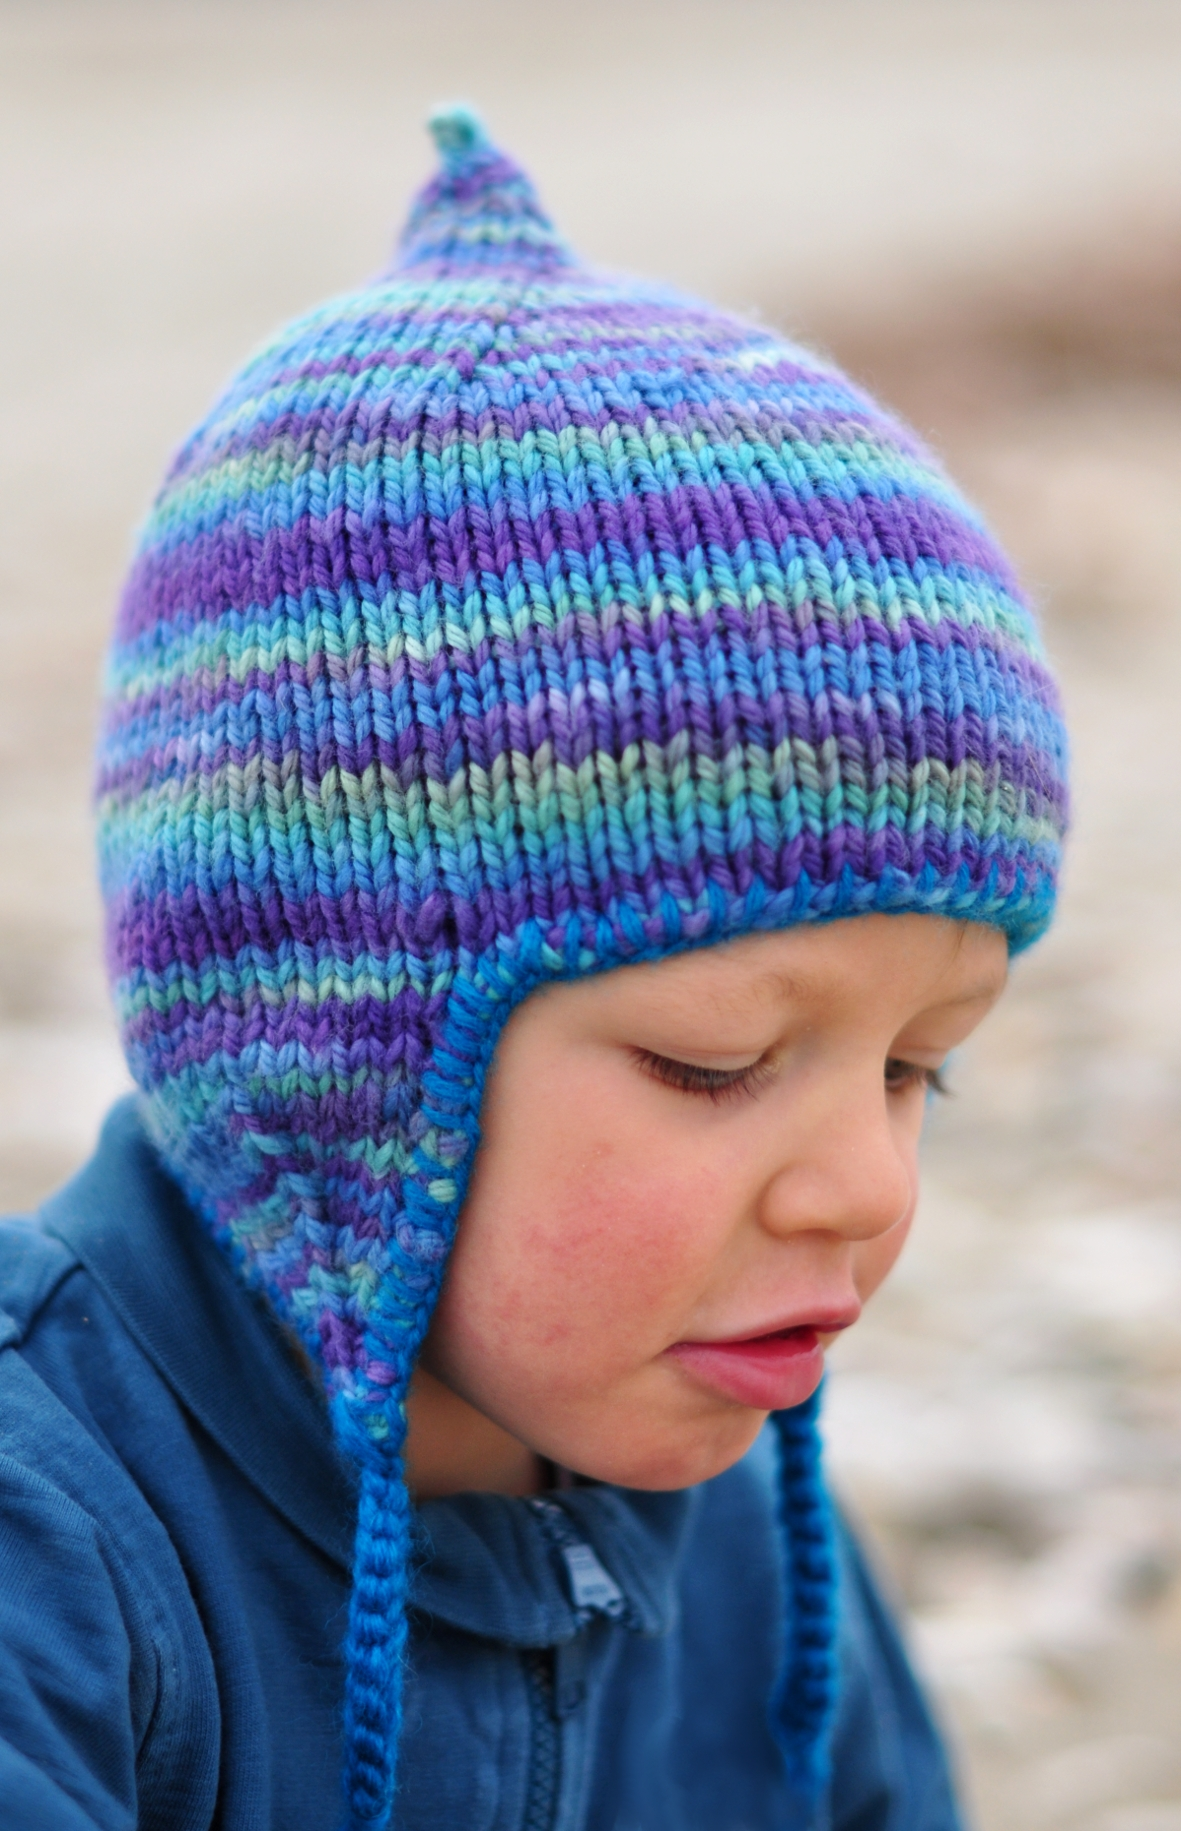 Bimple chullo pixie Hat knitting pattern